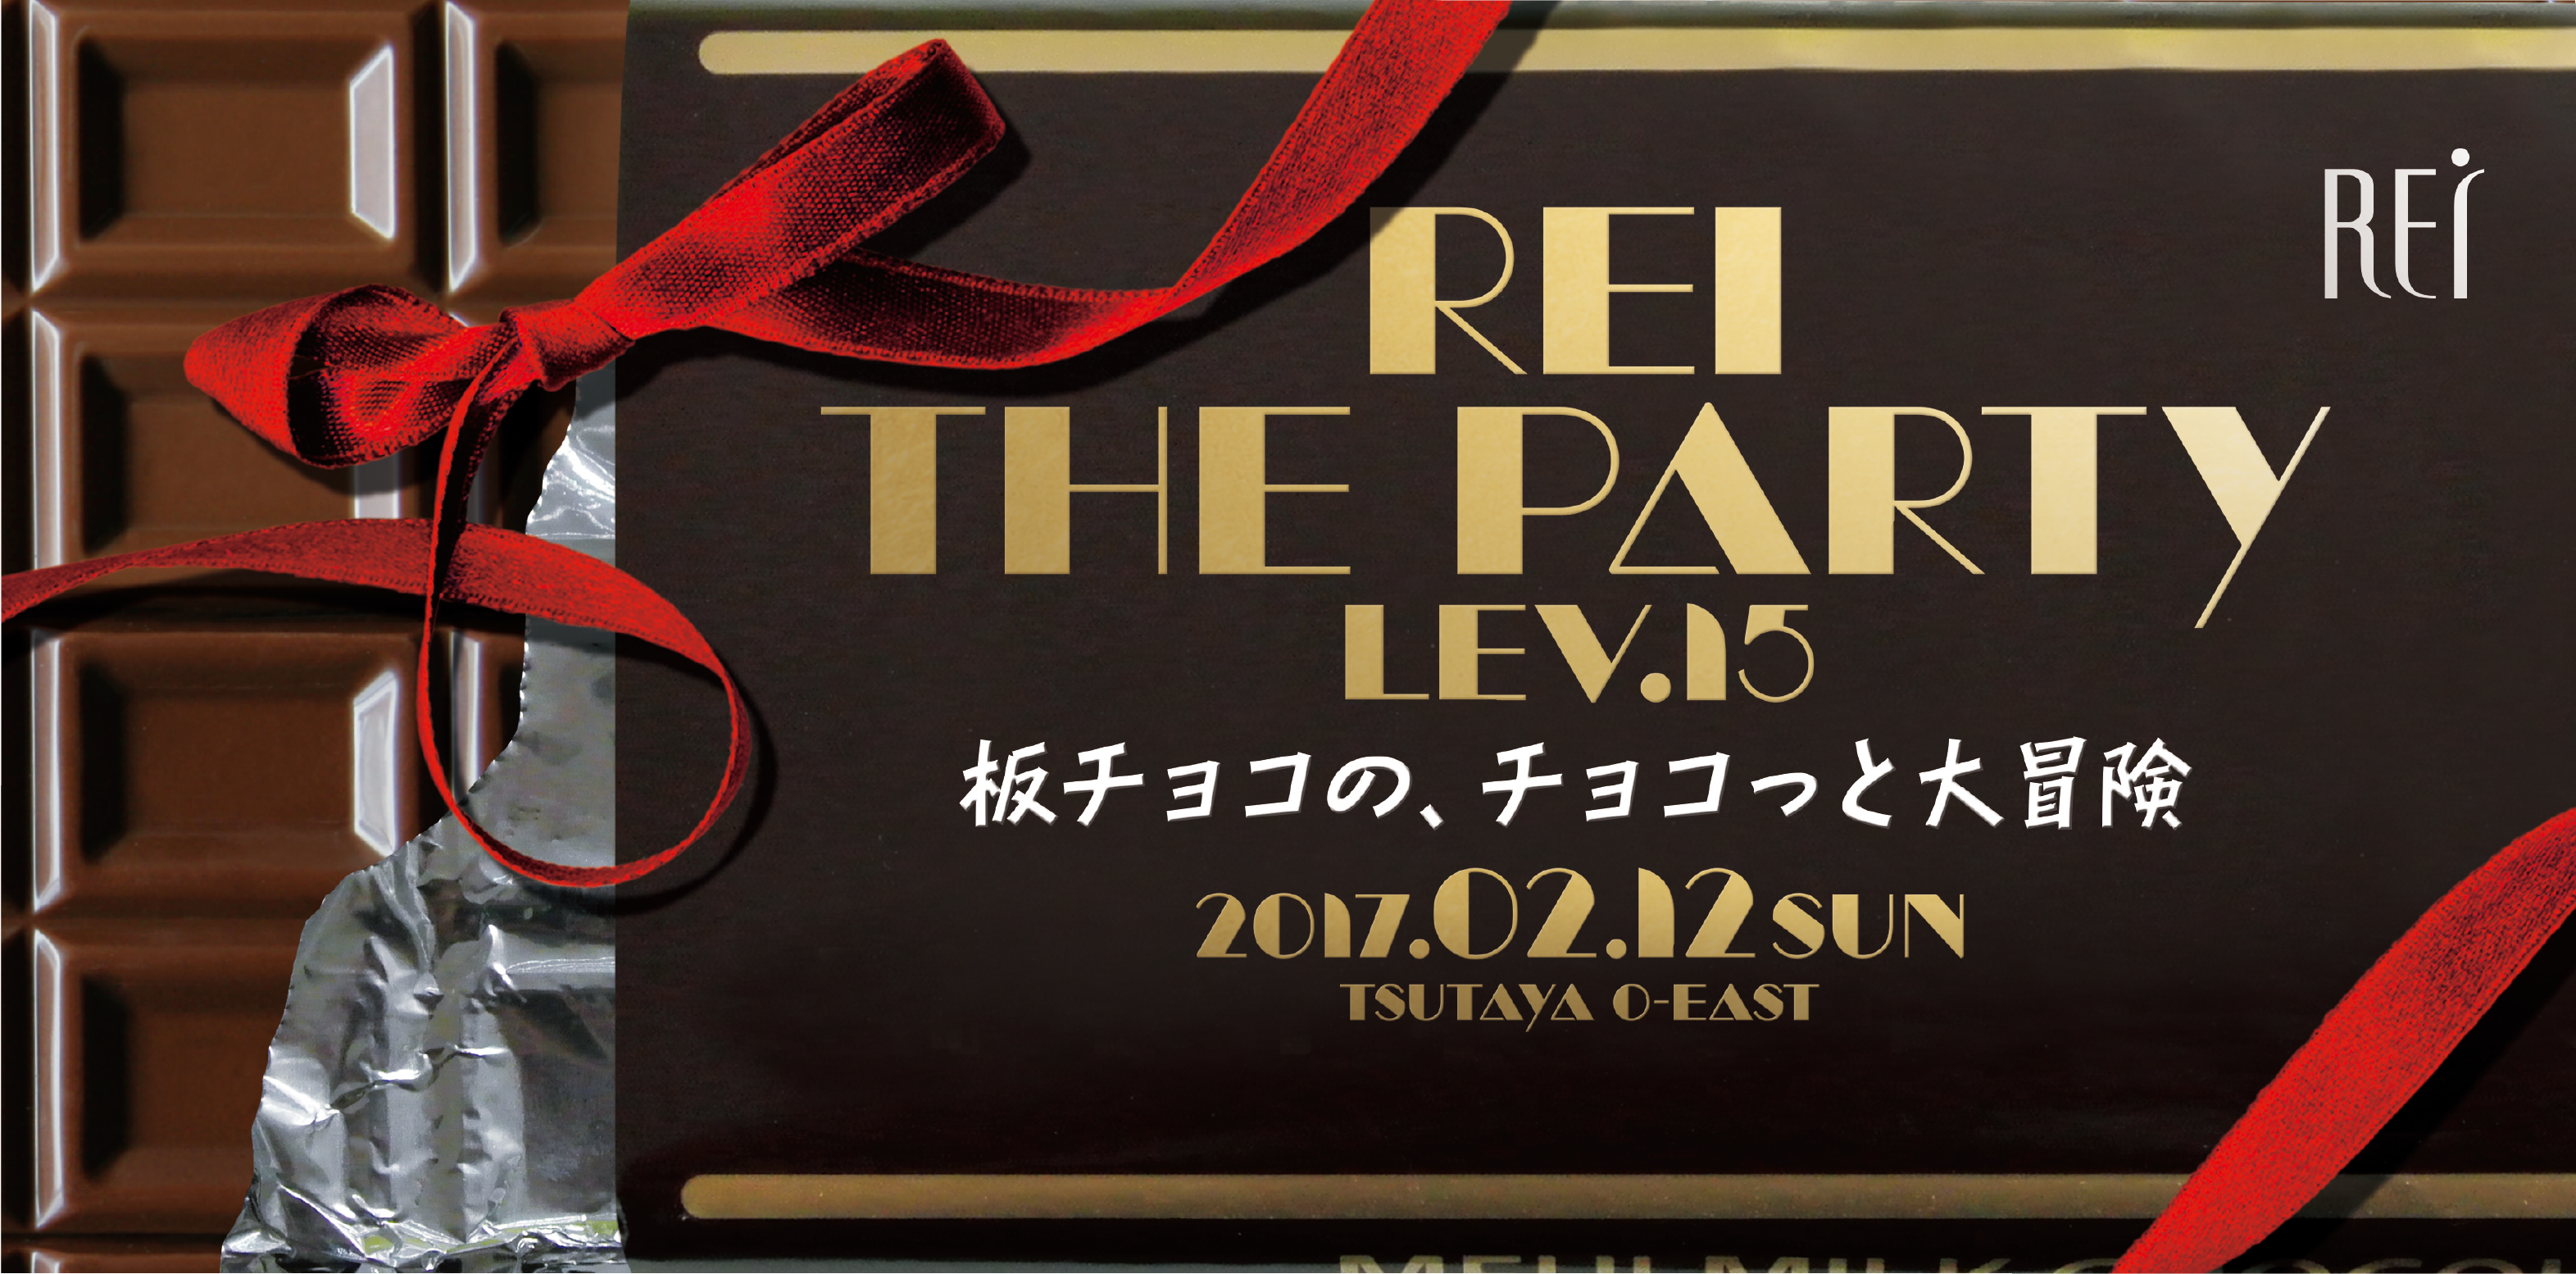 Rei The Party Lev.15